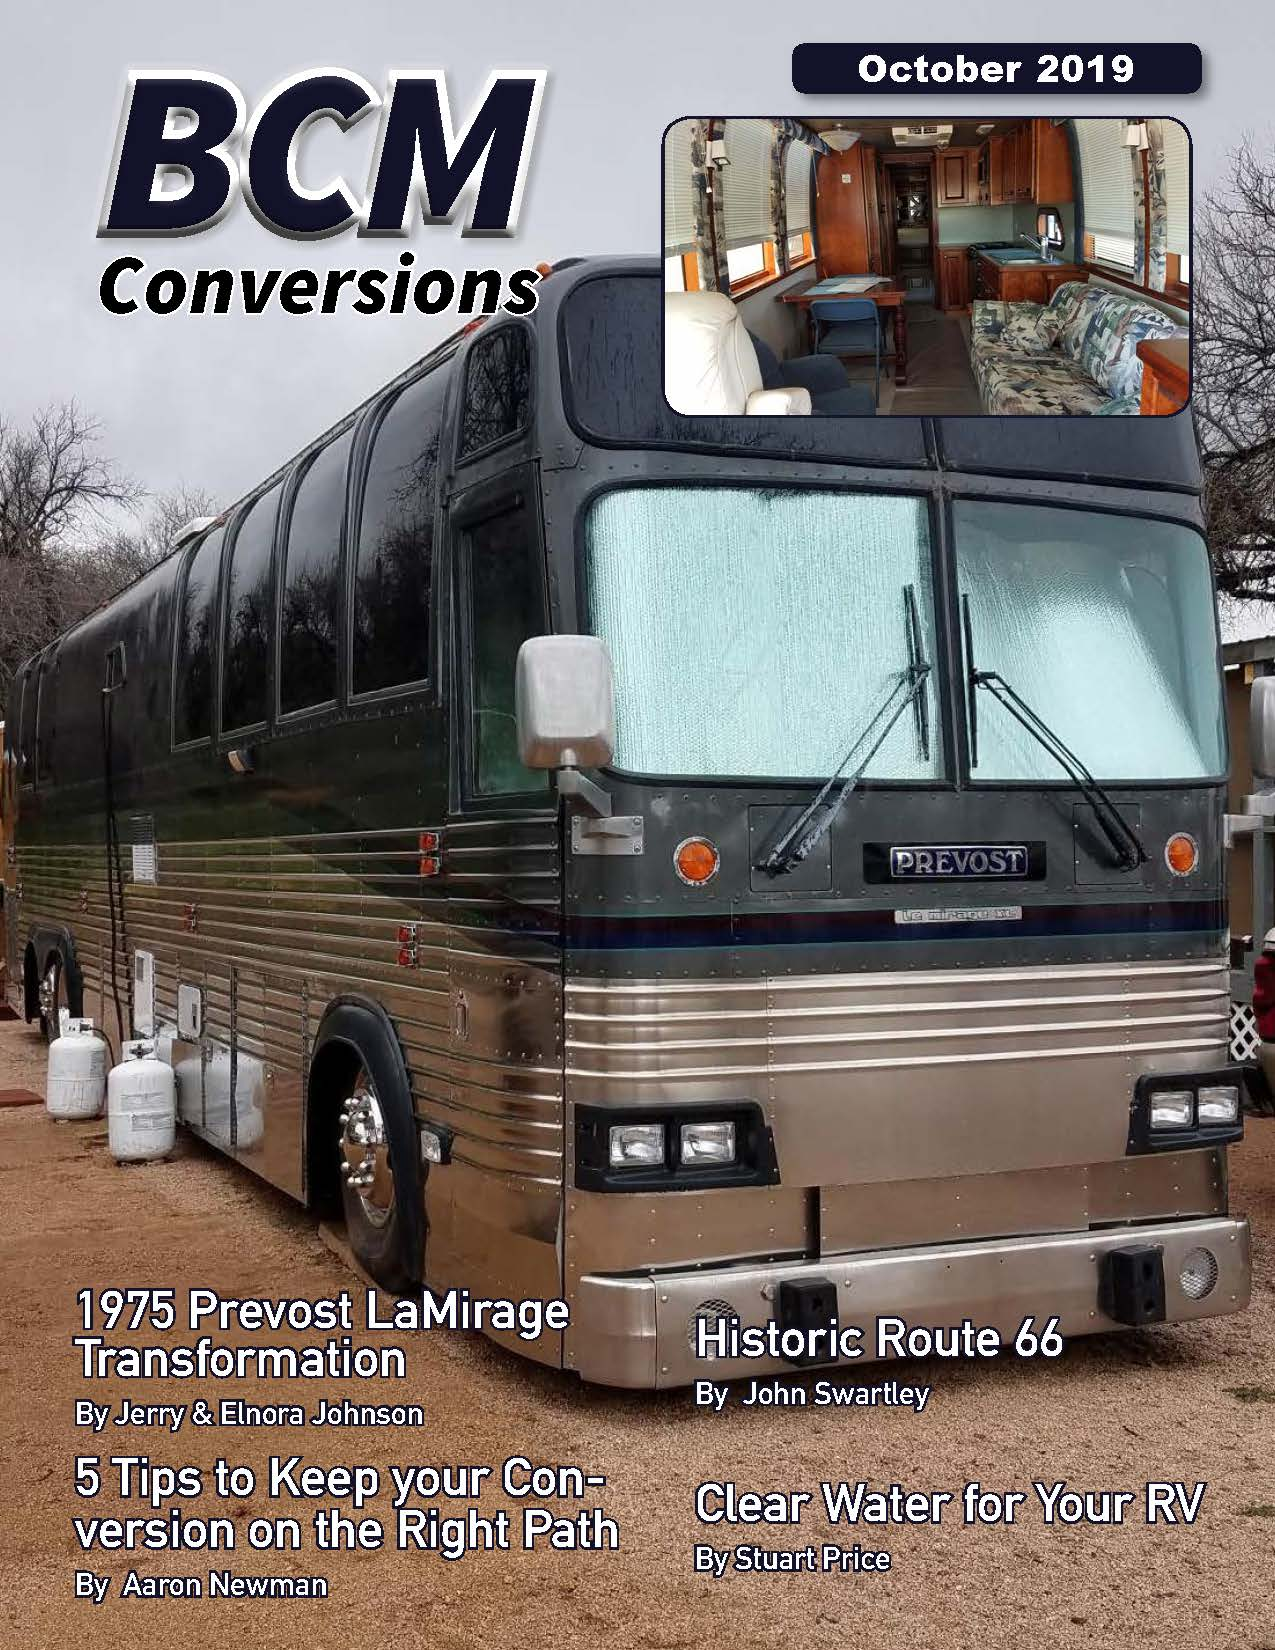 "<a href=""""><img class=""spu-open-10240"" src=""https://www.busconversionmagazine.com/wp-content/uploads/2019/10/October-Issue-2019-SD-25589-TOC.jpg""></a>"